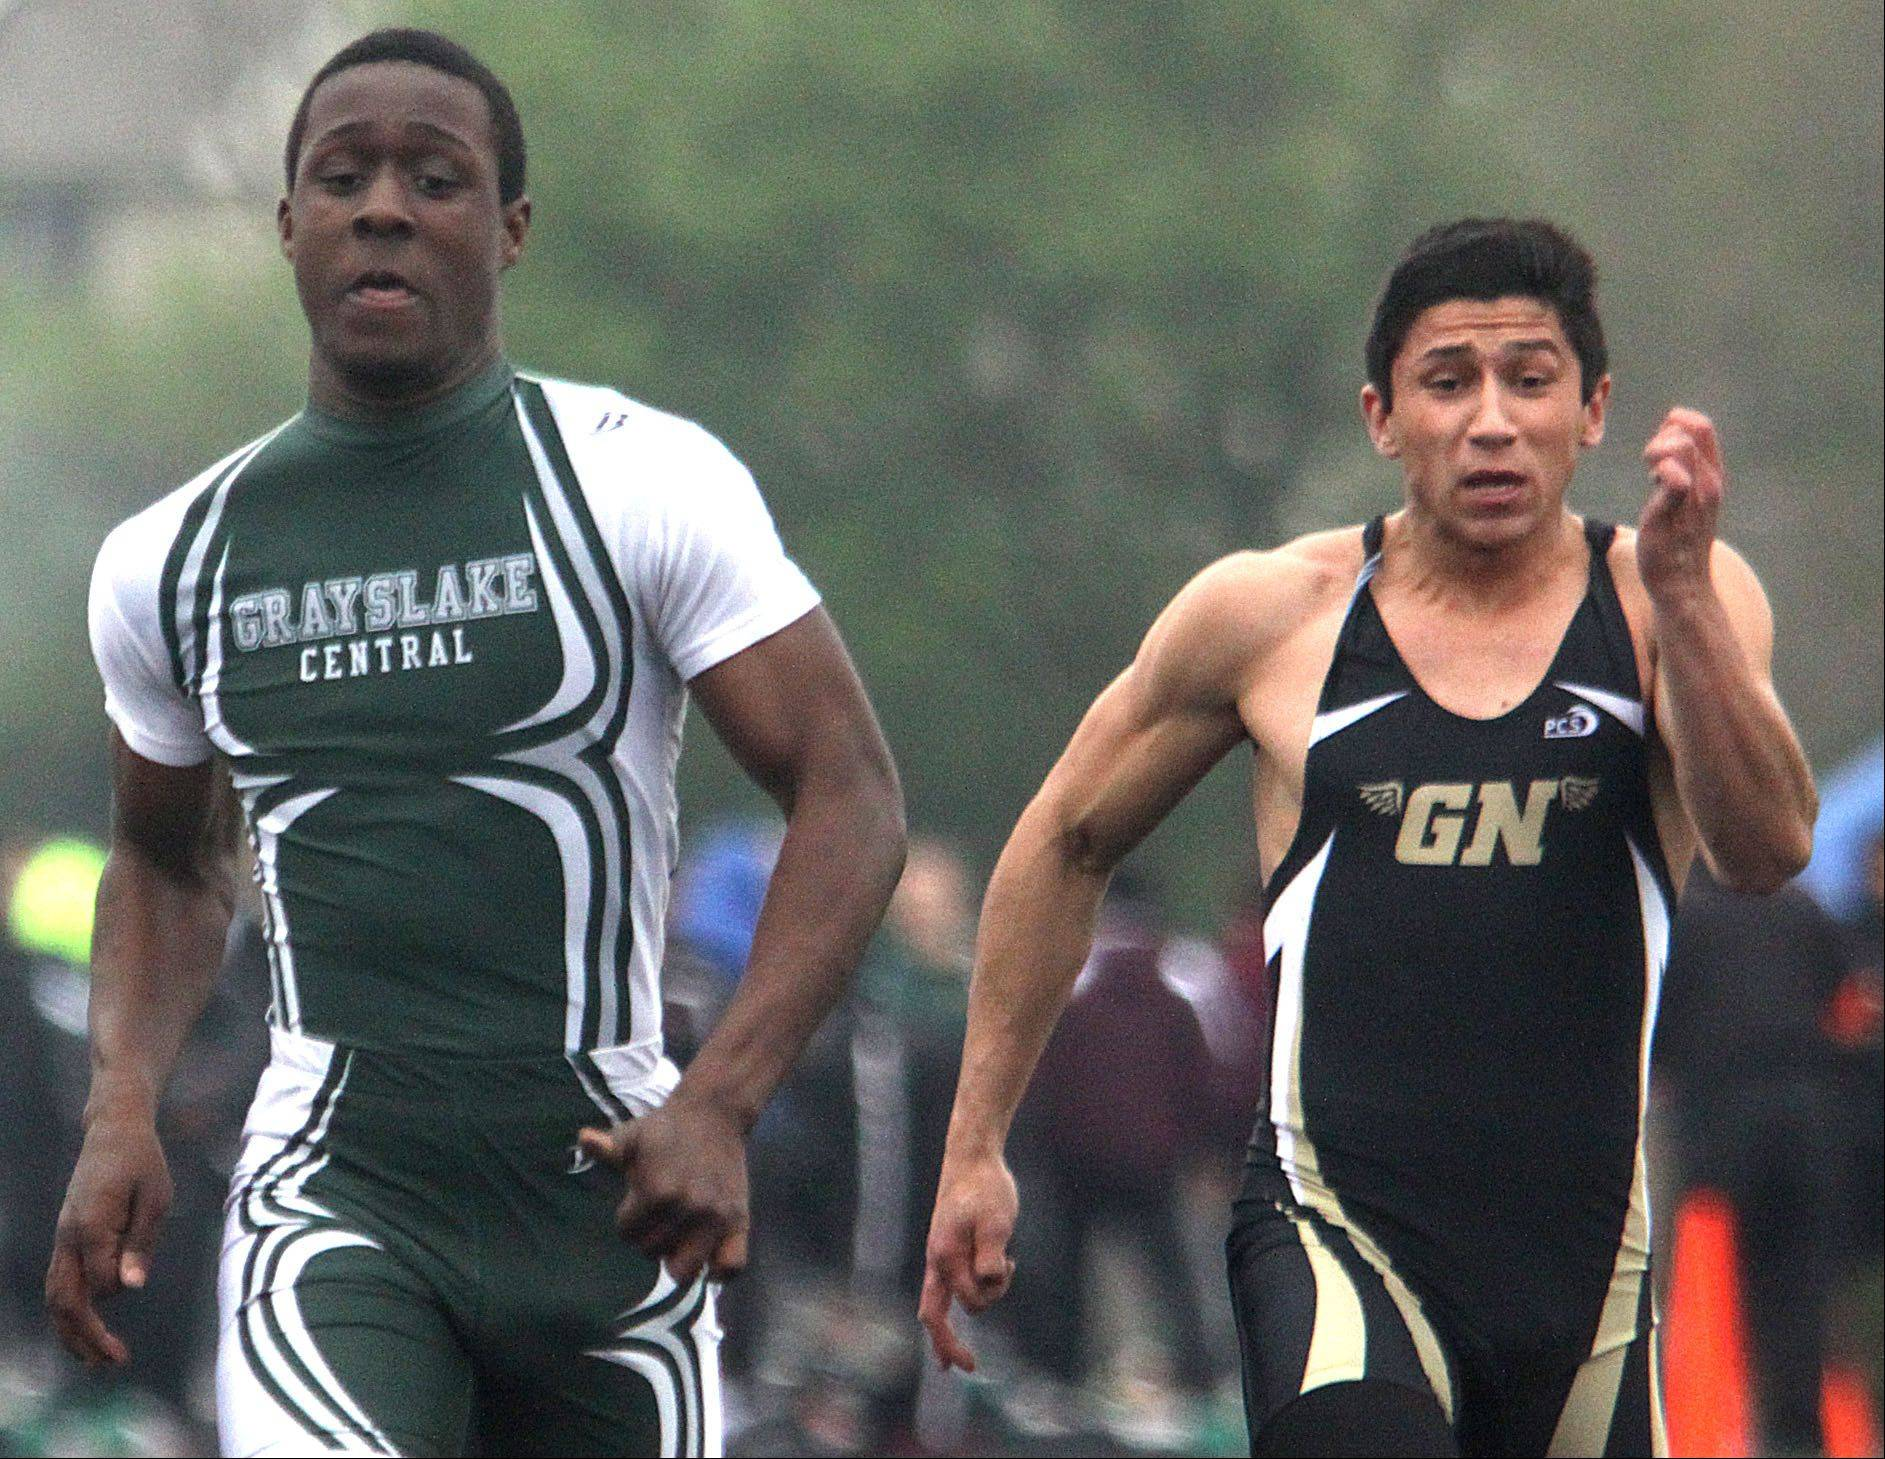 Grayslake Central's Davonta Jennings, left, and Grayslake North's Alex Rotter participate in the 100-meter dash prelims during the Fox Valley Conference Boys Track & Field Championships at Al Bohrer Field on the campus of Cary-Grove High School Friday night.